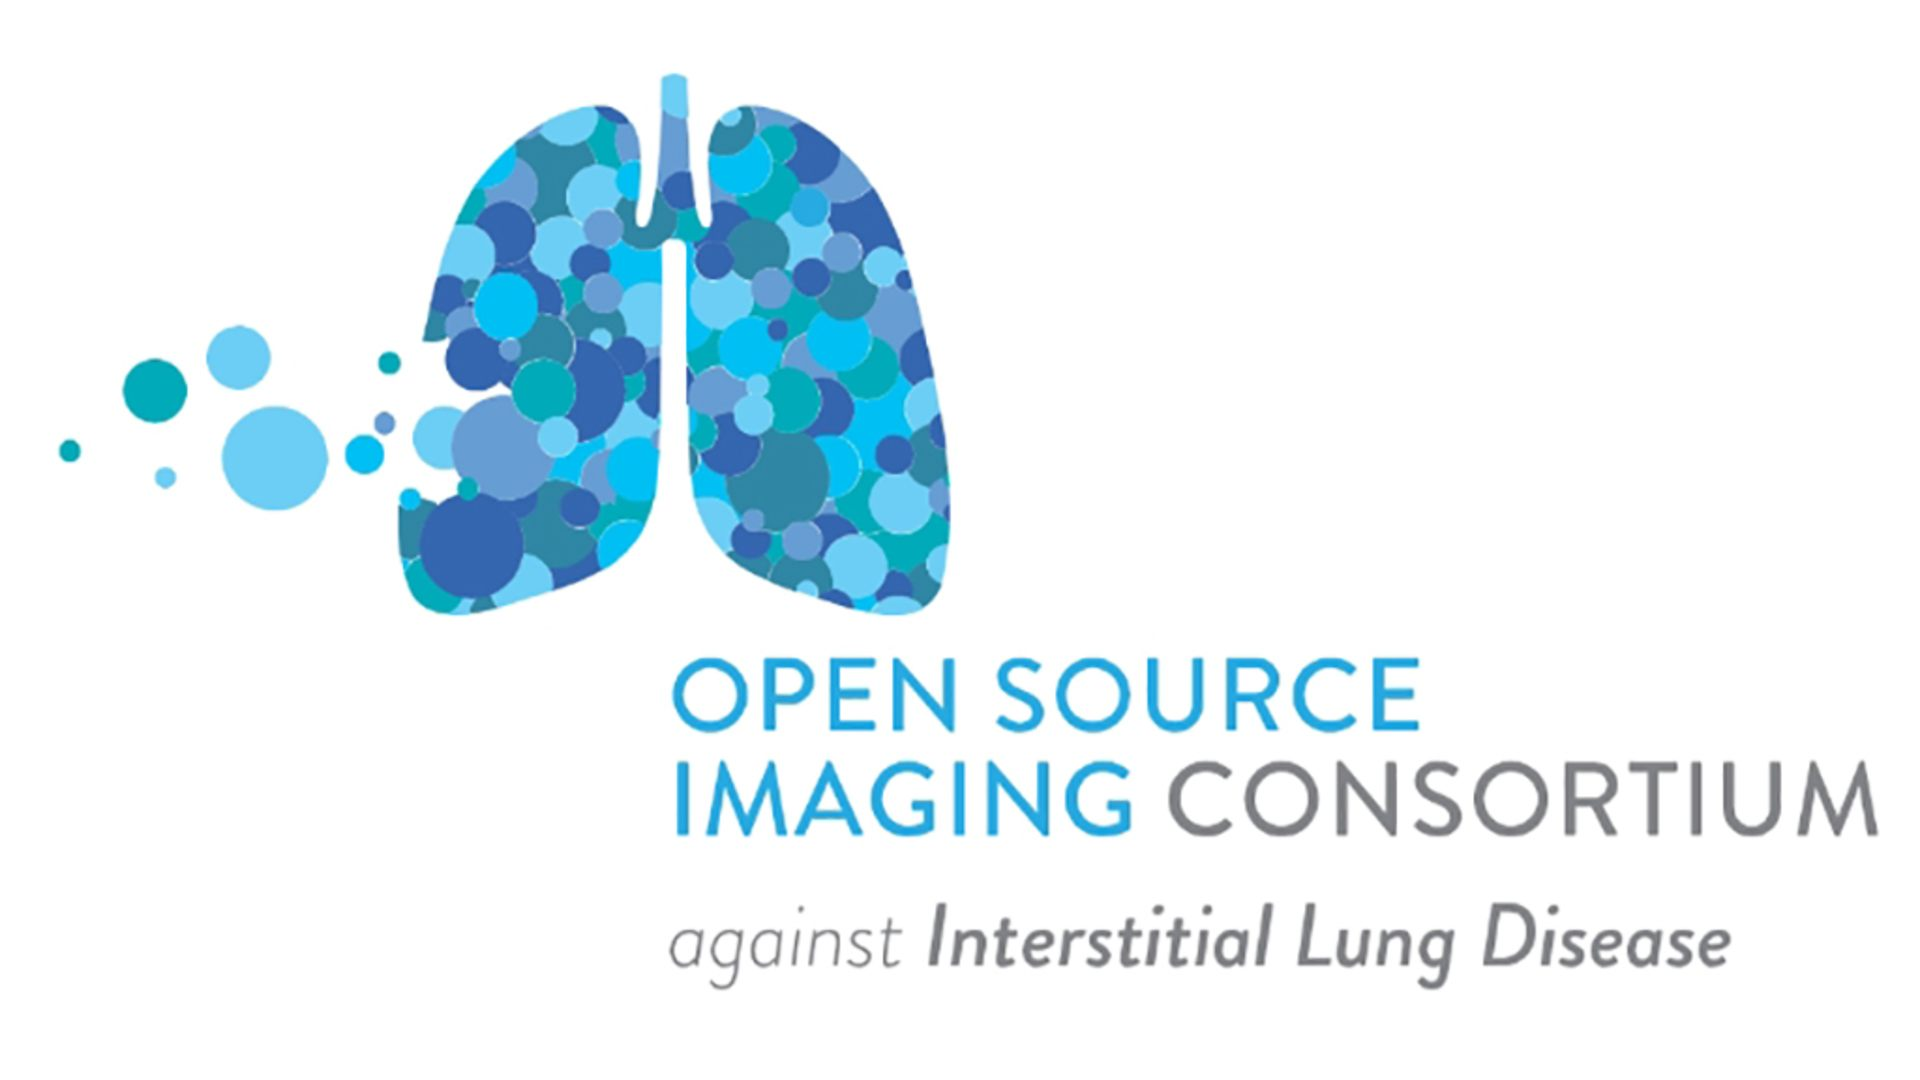 OSIC and Siemens Healthineers Join Forces to Decipher Lung